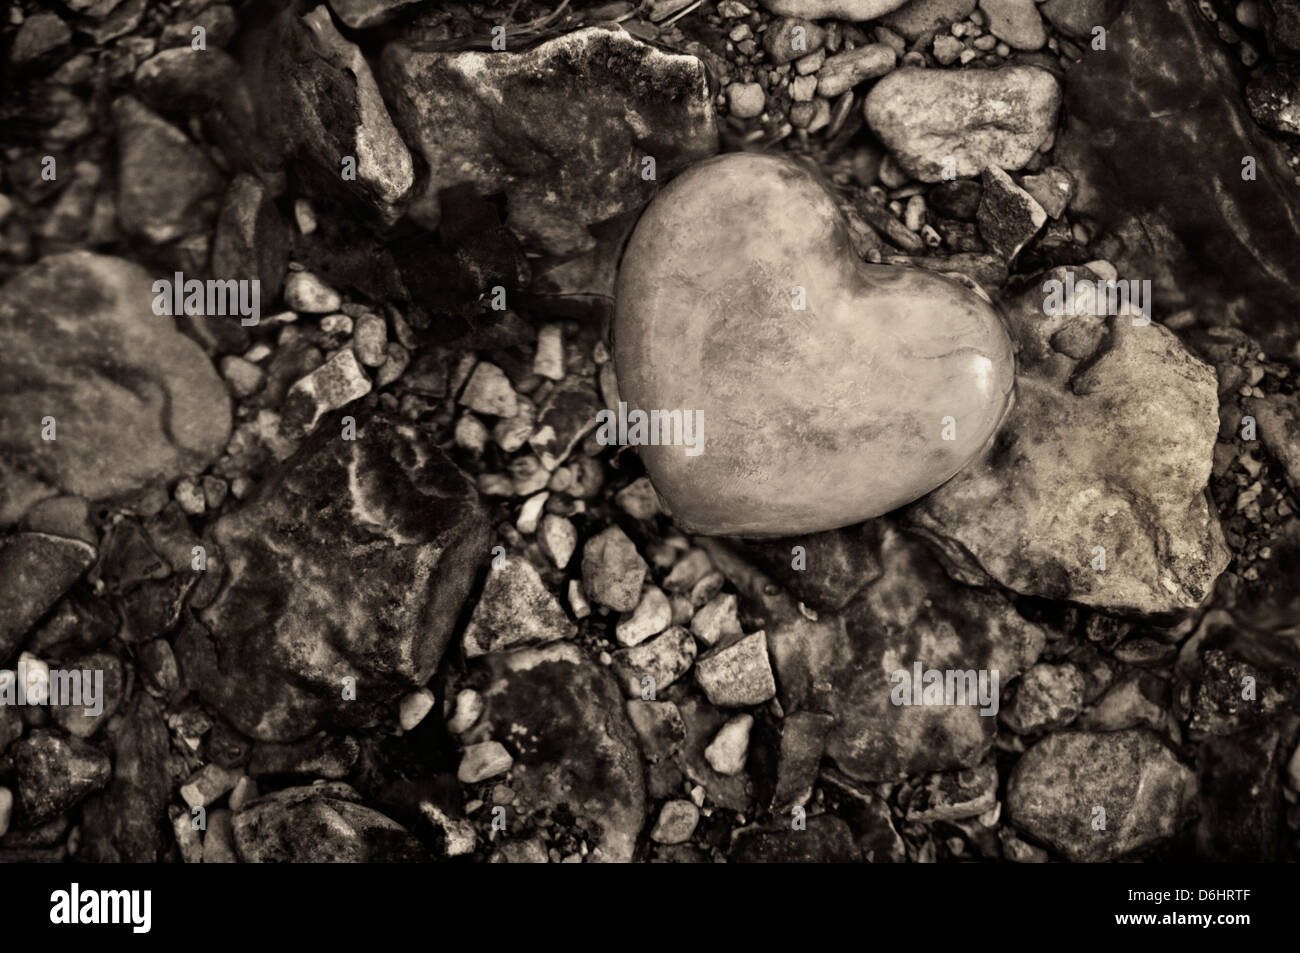 Black and White Stone Heart Amid Pebbles in a Stream - Stock Image